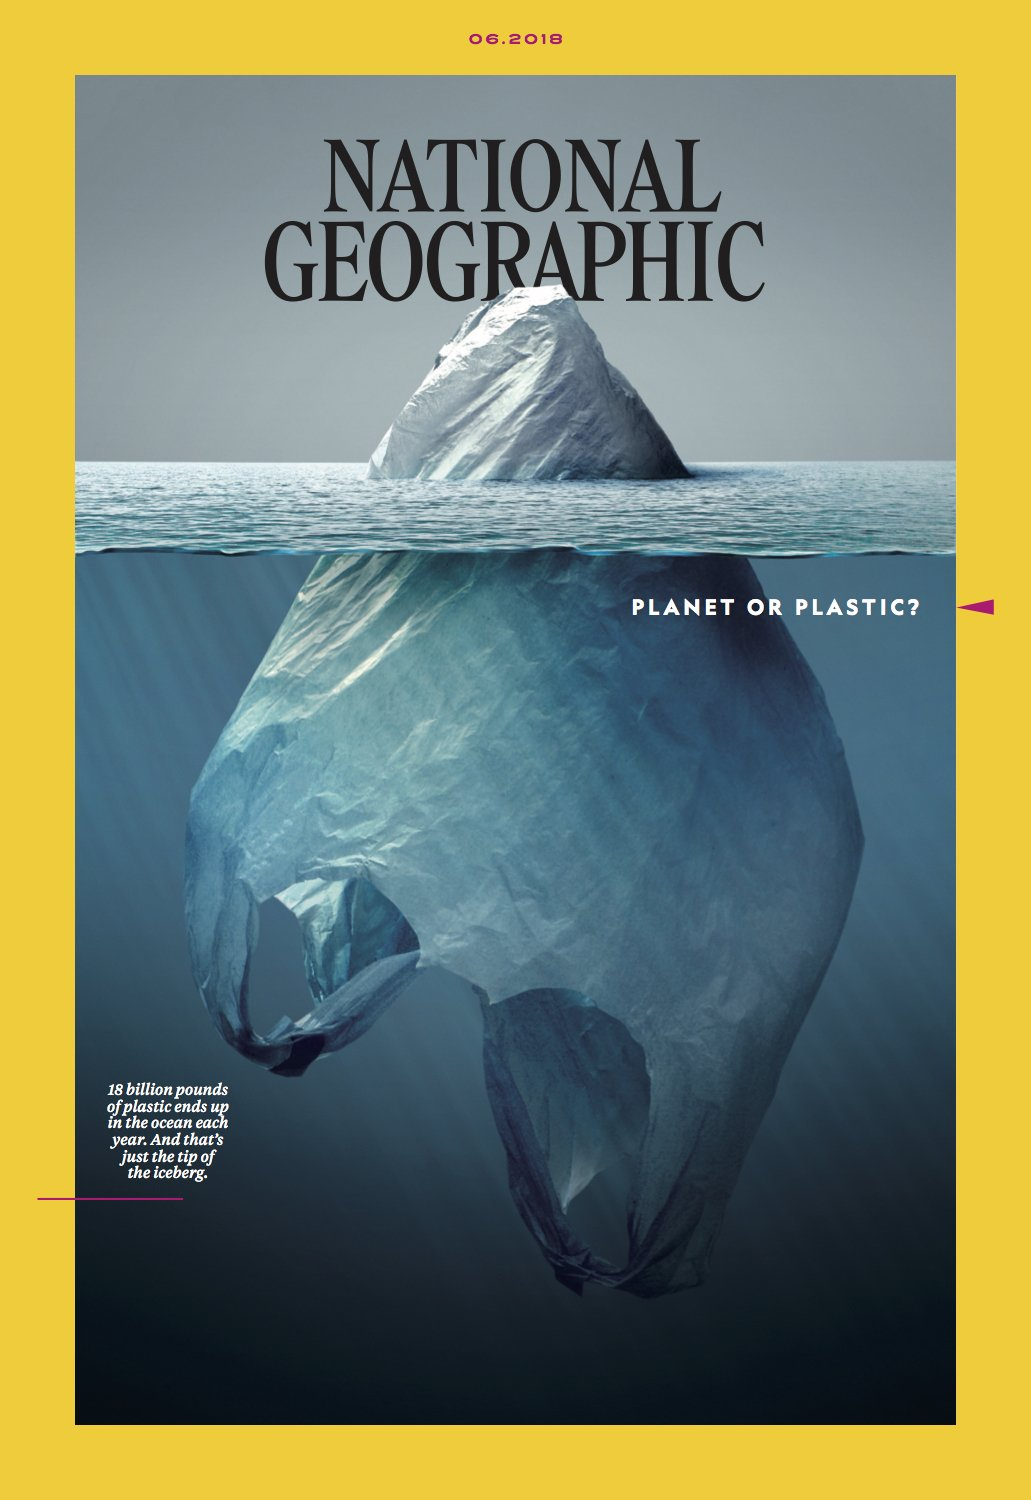 National Geographic plastic iceberg